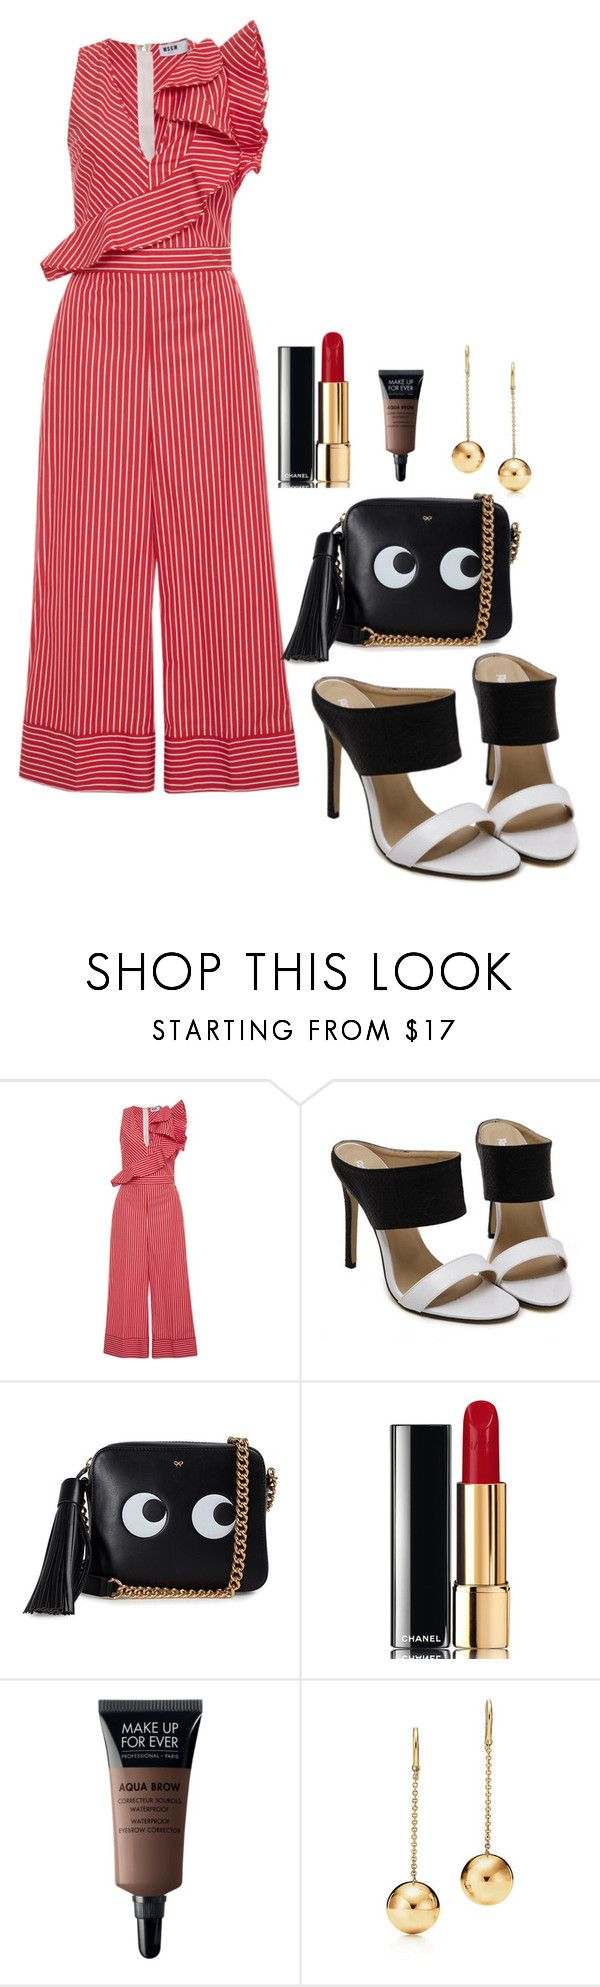 """marianne"" by nover on Polyvore featuring MSGM, Anya Hindmarch and Chanel"